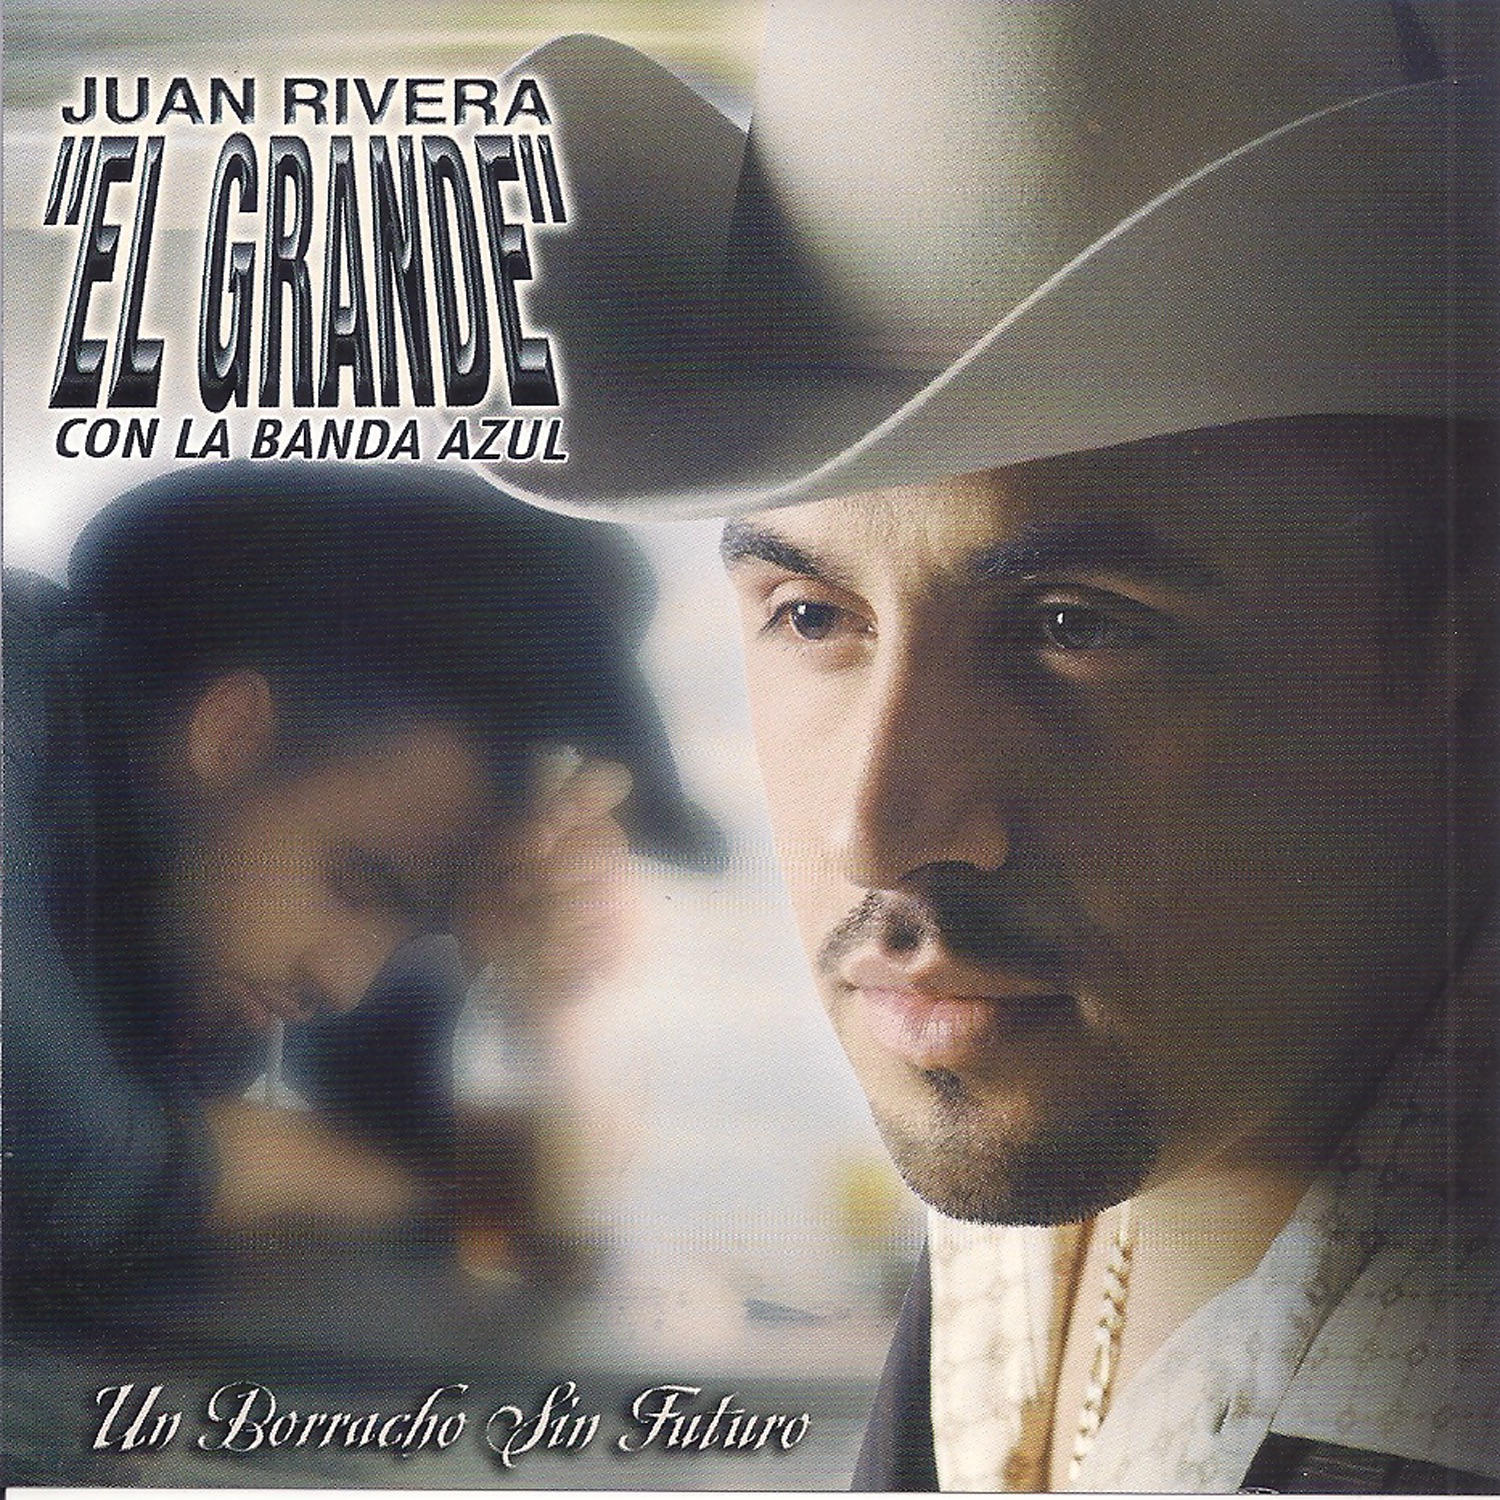 MP3 Songs Online:♫ Montones de Ceniza - Juan Rivera album Un Borracho Sin Futuro. Latino,Music listen to music online free without downloading.